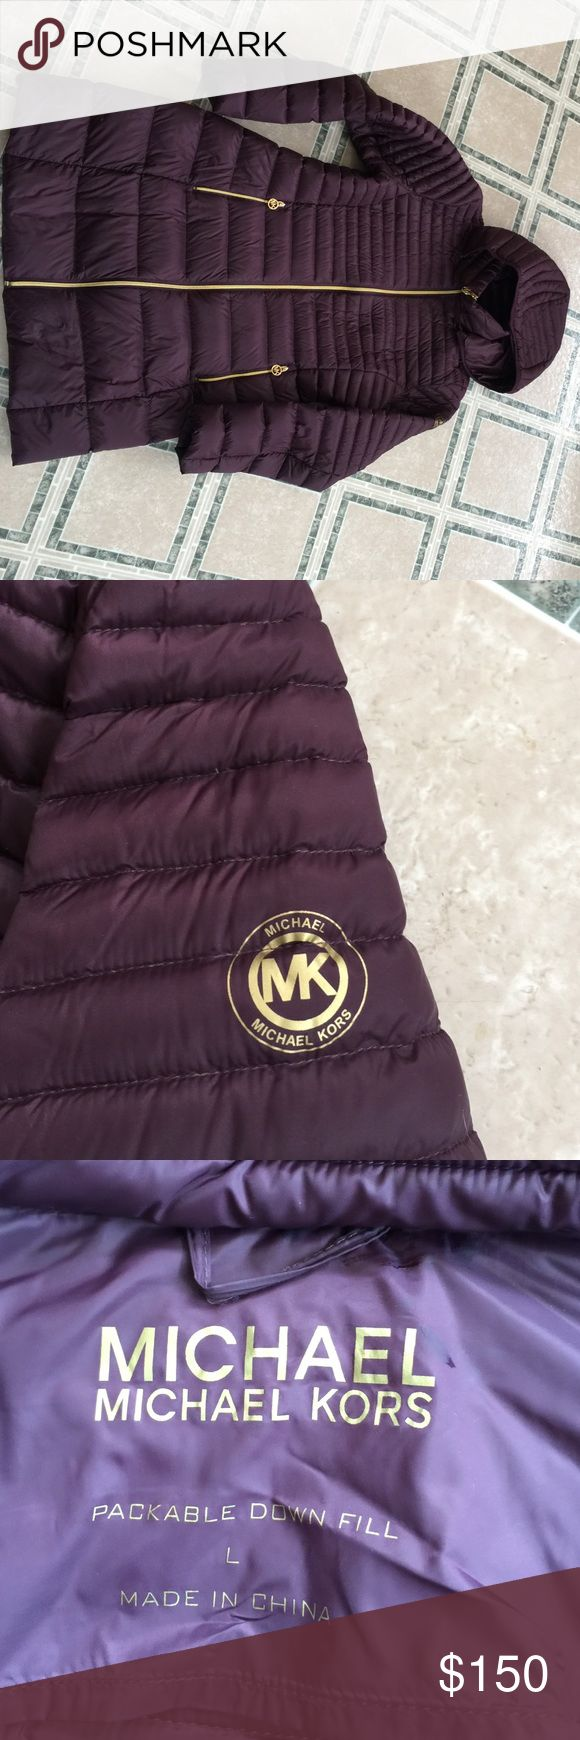 MICHAEL KORS PUFFER COAT -Large Gorgeous Cabernet color Michael kors puffer coat, long!  Included good.  Gold zipper detail.  Light packable but very warm.  This was only worn 2 times, it is just a little too big on me.  I'm a medium. MICHAEL Michael Kors Jackets & Coats Puffers